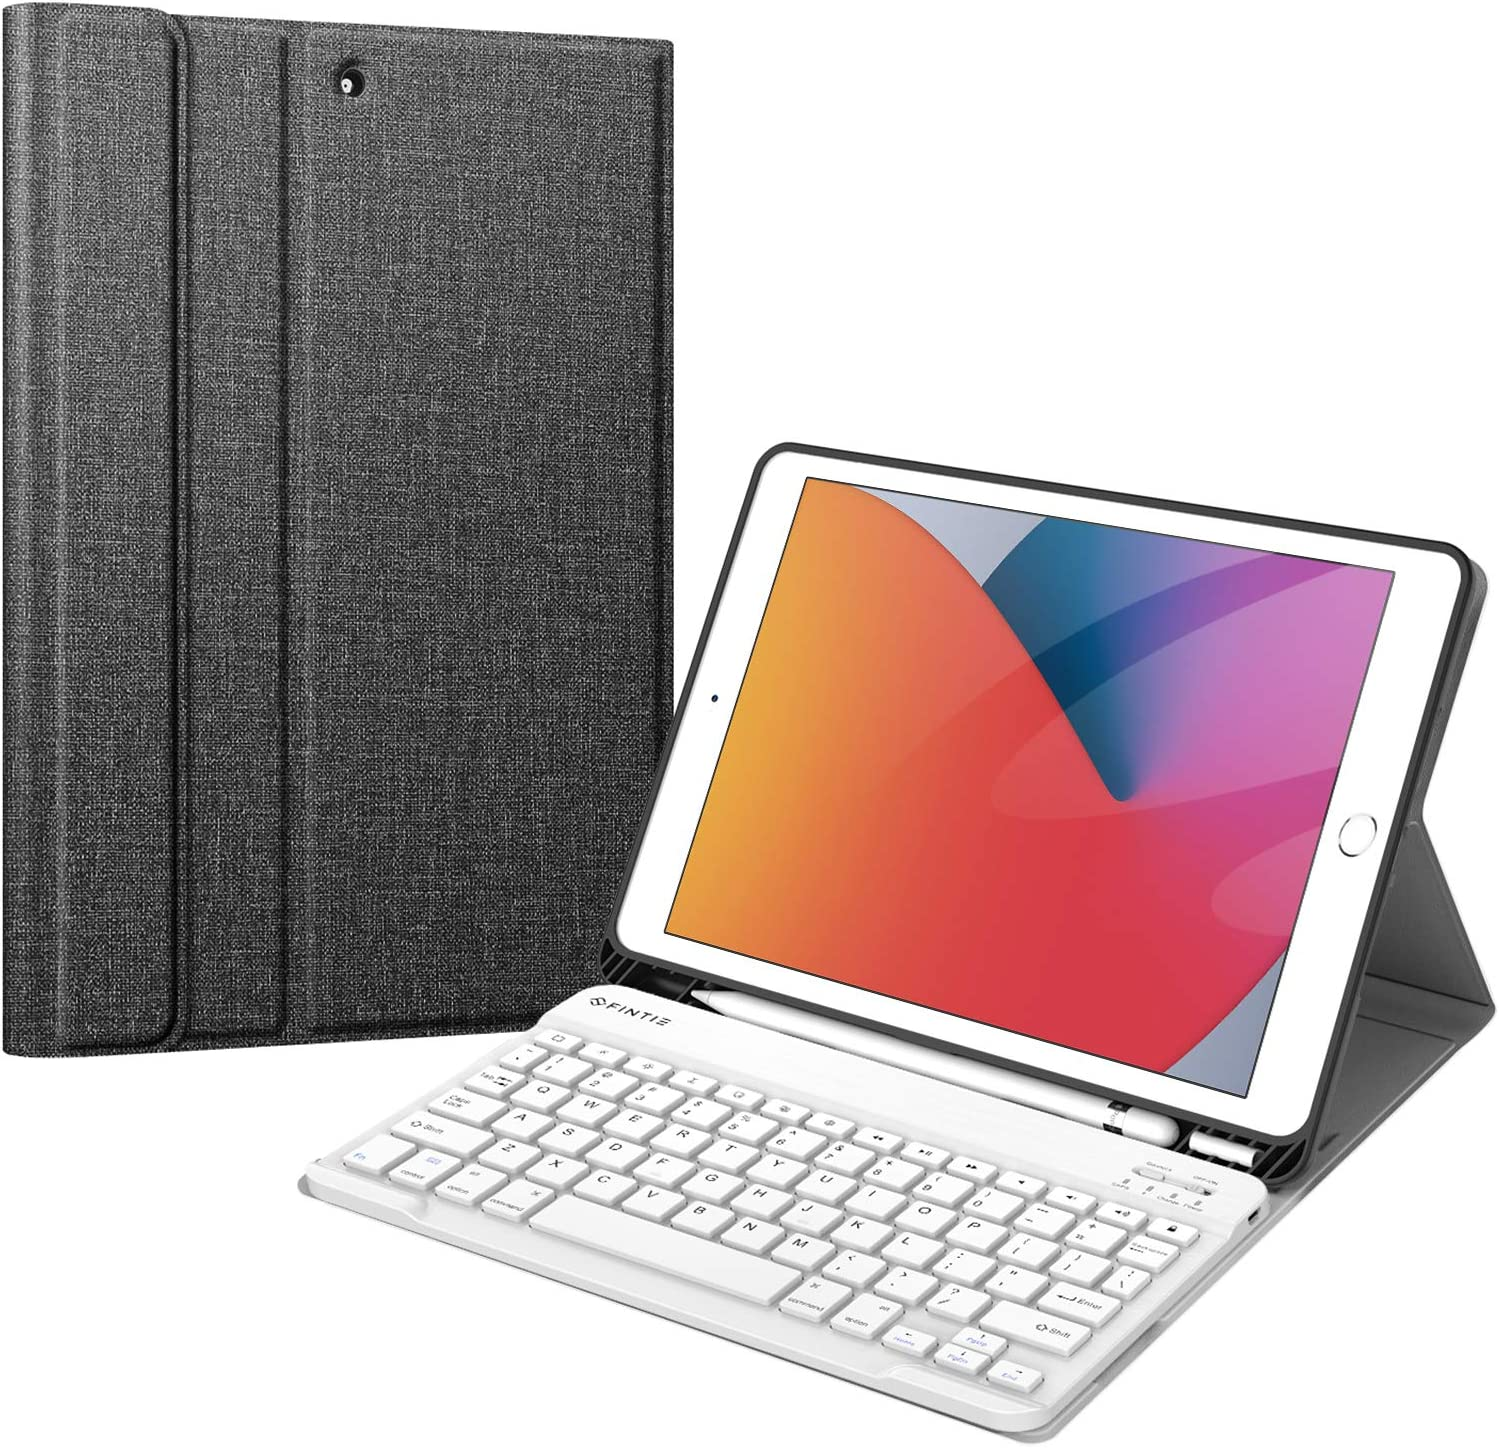 Fintie Keyboard Case for New iPad 8th Gen (2020) / 7th Generation (2019) 10.2 Inch, Soft TPU Back Stand Cover with Pencil Holder, Magnetically Detachable Wireless Bluetooth Keyboard, Gray